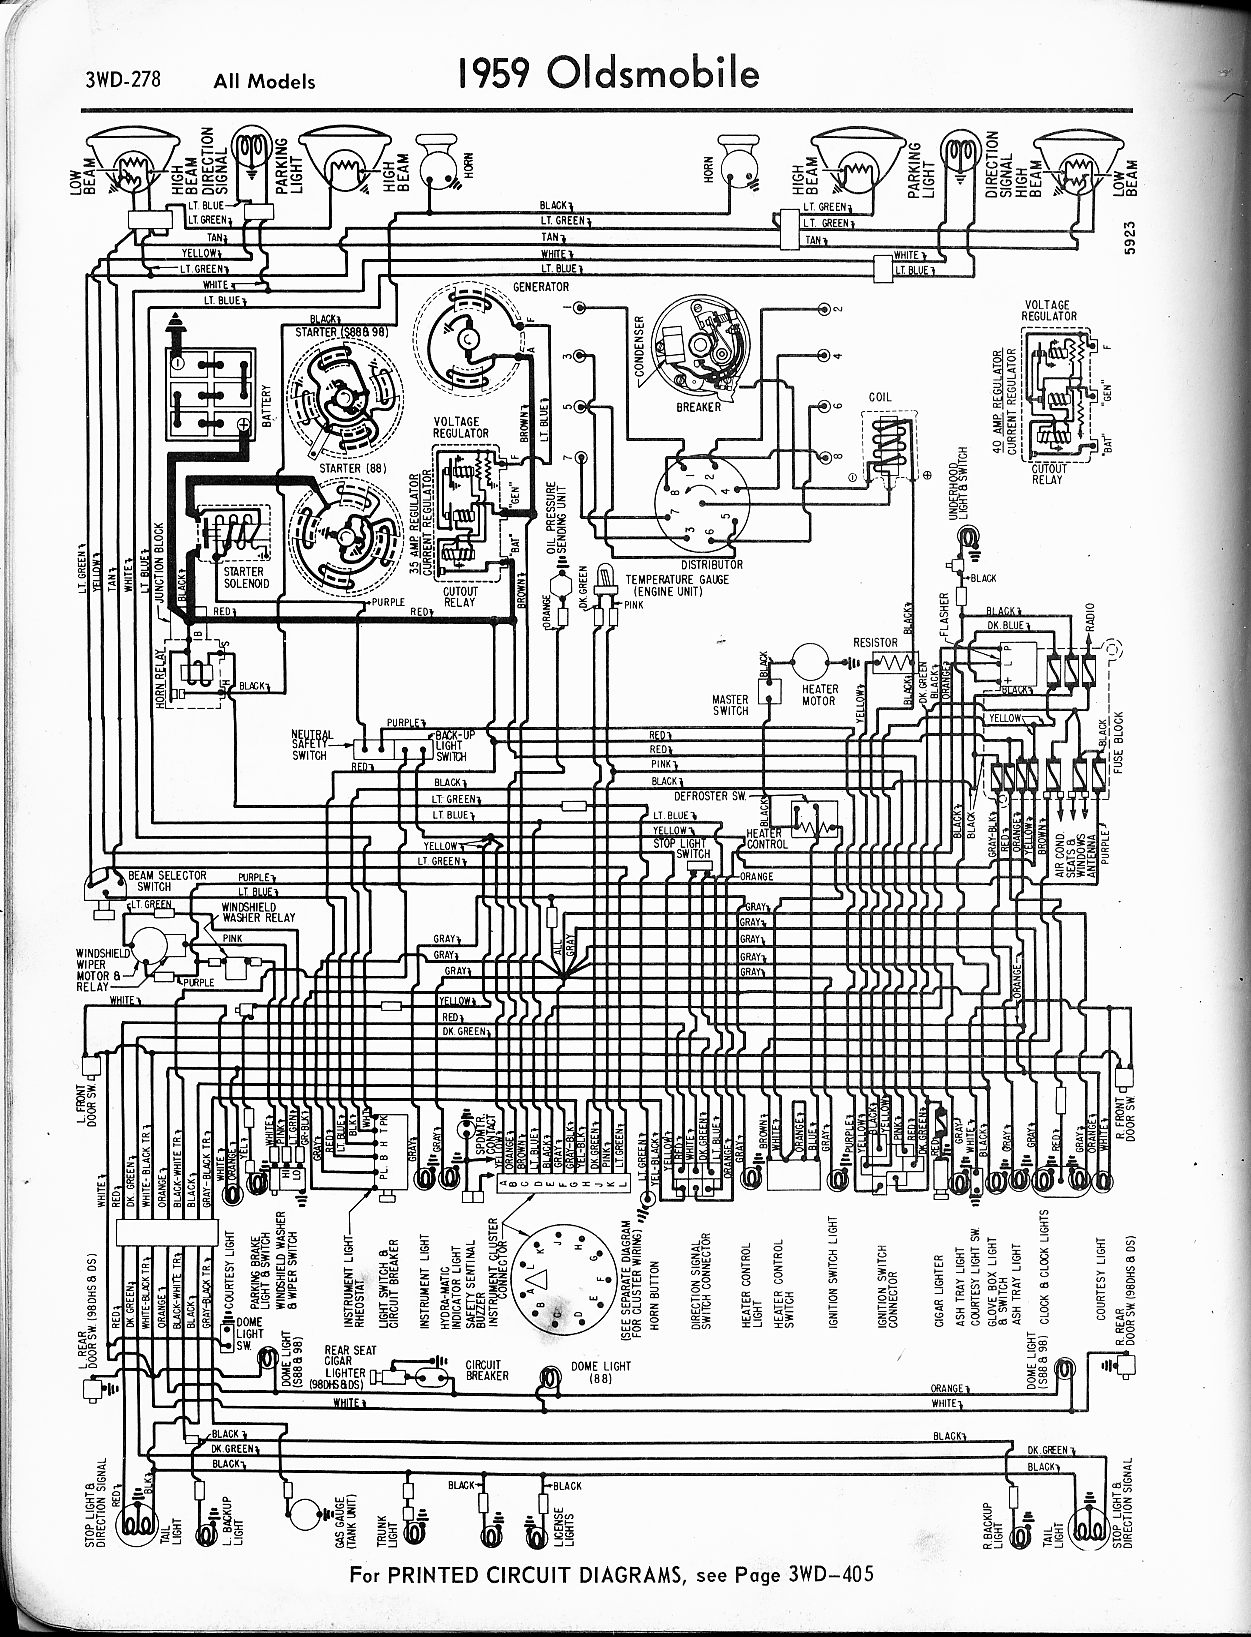 MWire5765 278 oldsmobile wiring diagrams the old car manual project GM Radio Wiring Diagram at fashall.co